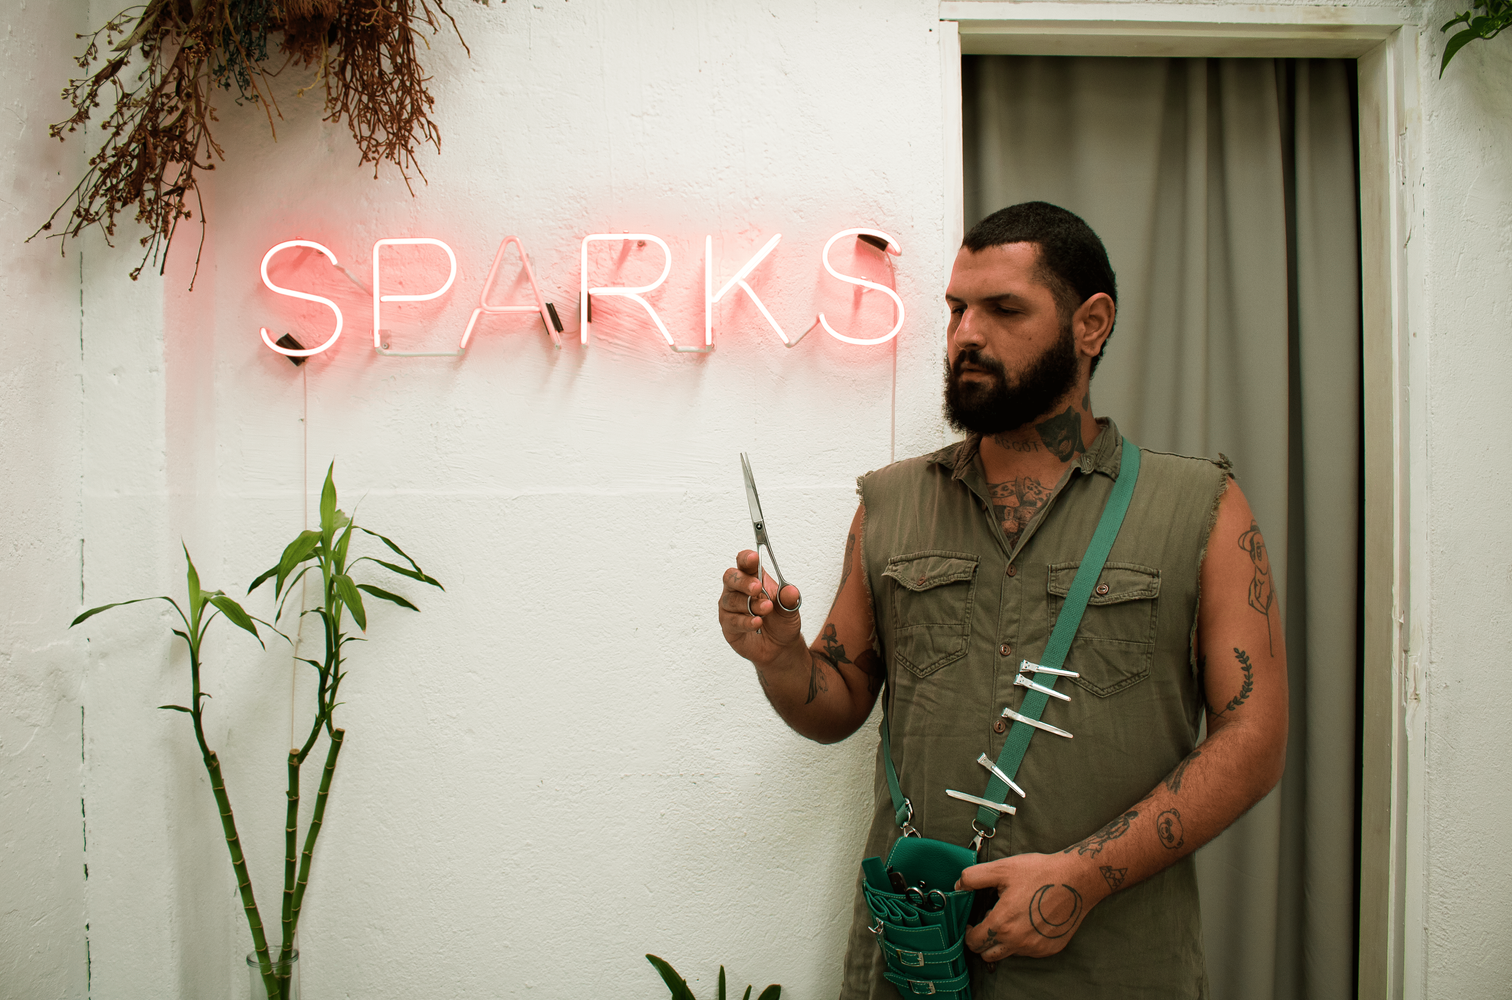 Sparks cuts